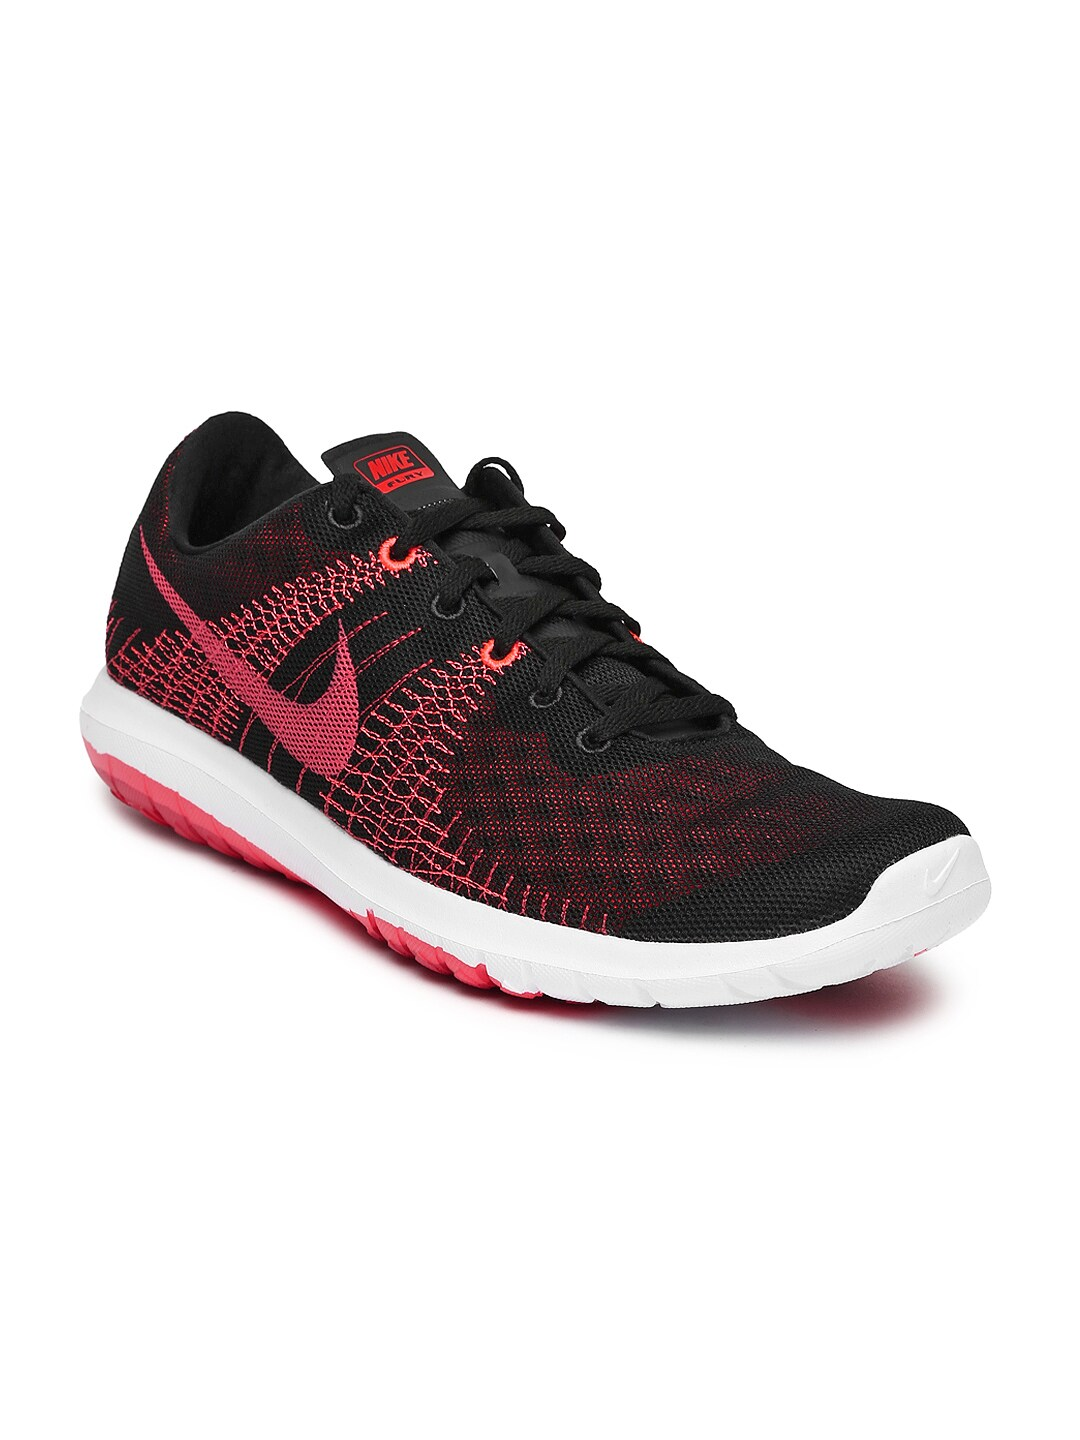 70fe0b5e4ae7 Nike 705298-008 Men Black And Coral Pink Flex Fury Running Shoes- Price in  India